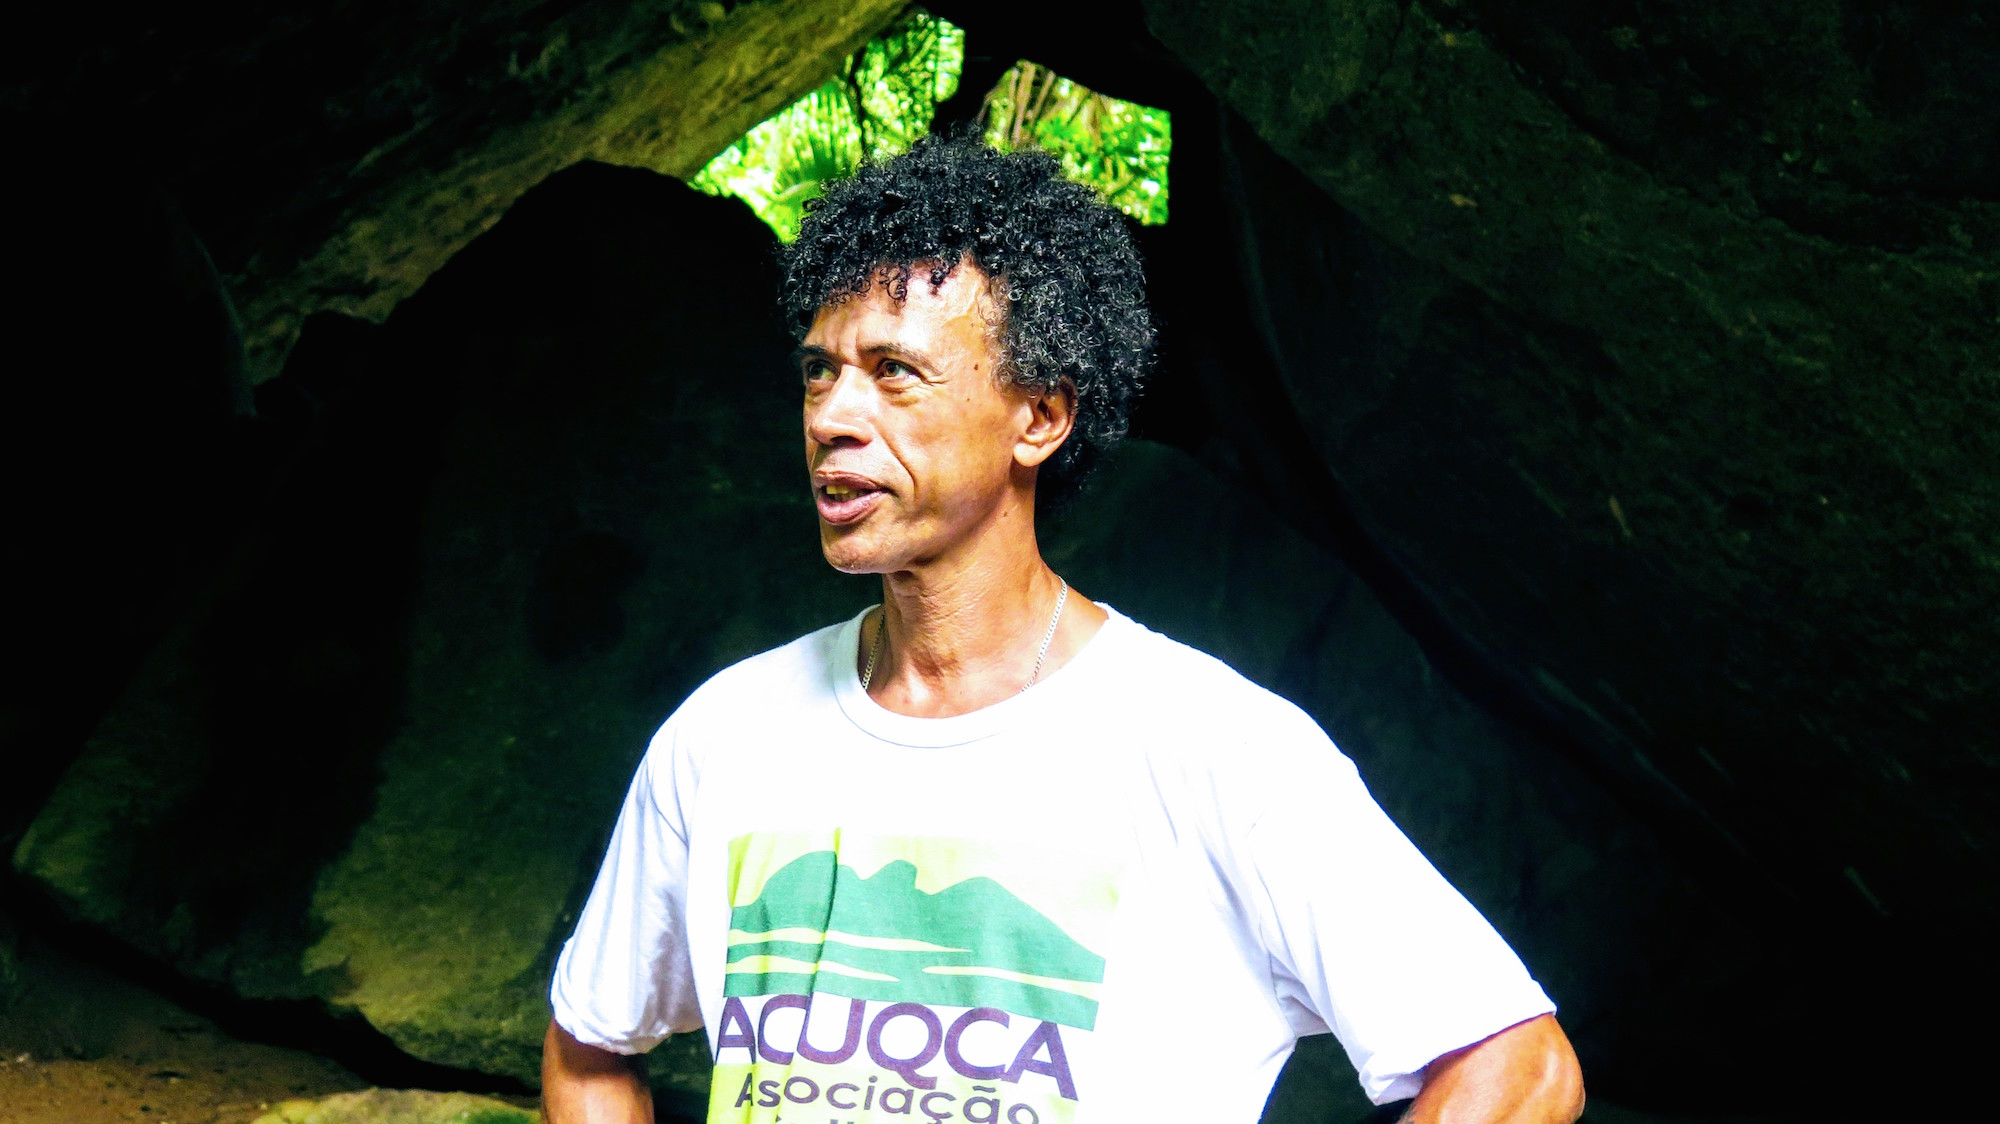 Adilson Almeida speaks of the sacred site of the quilombo